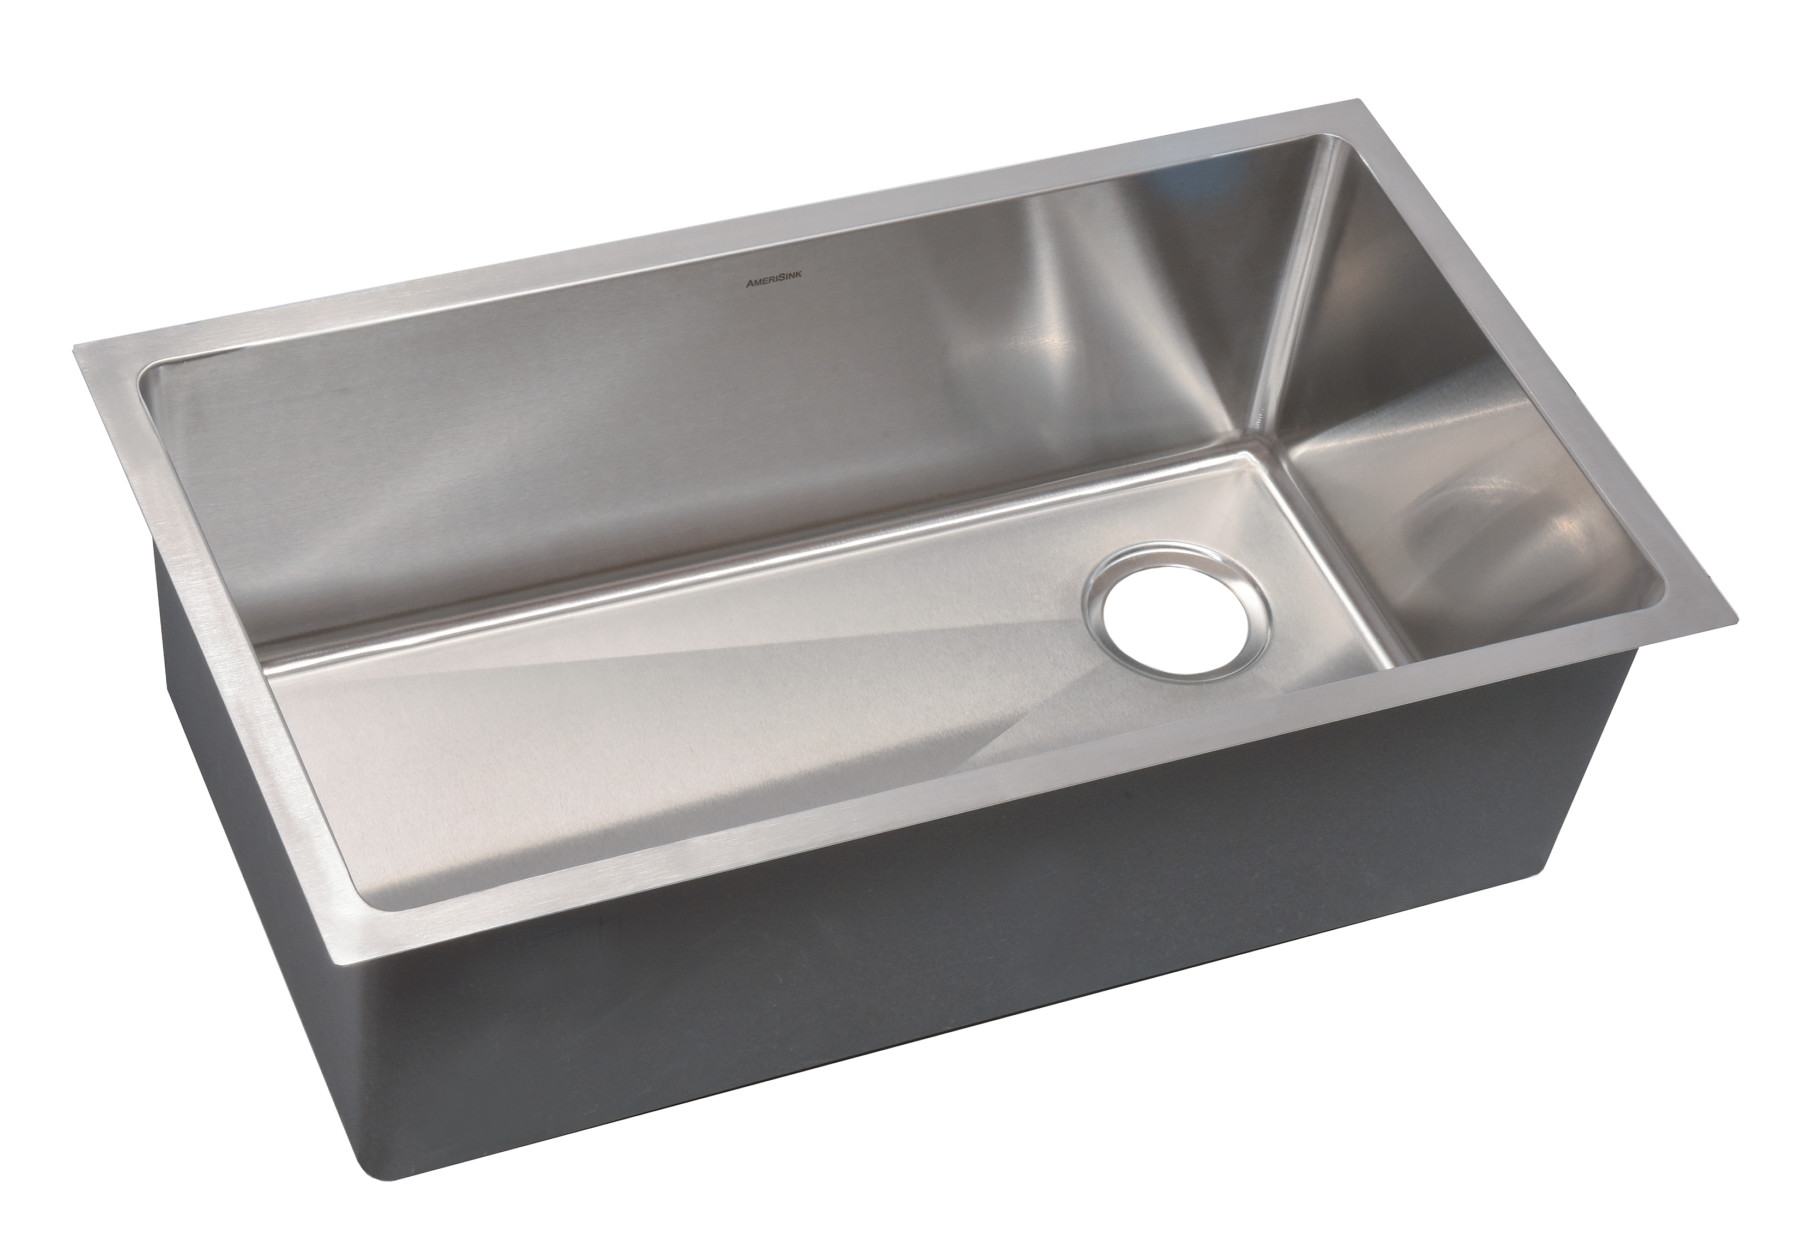 as361 3125 x 18 x 10 18g single bowl undermount legend stainless steel kitchen sink - Metal Kitchen Sink